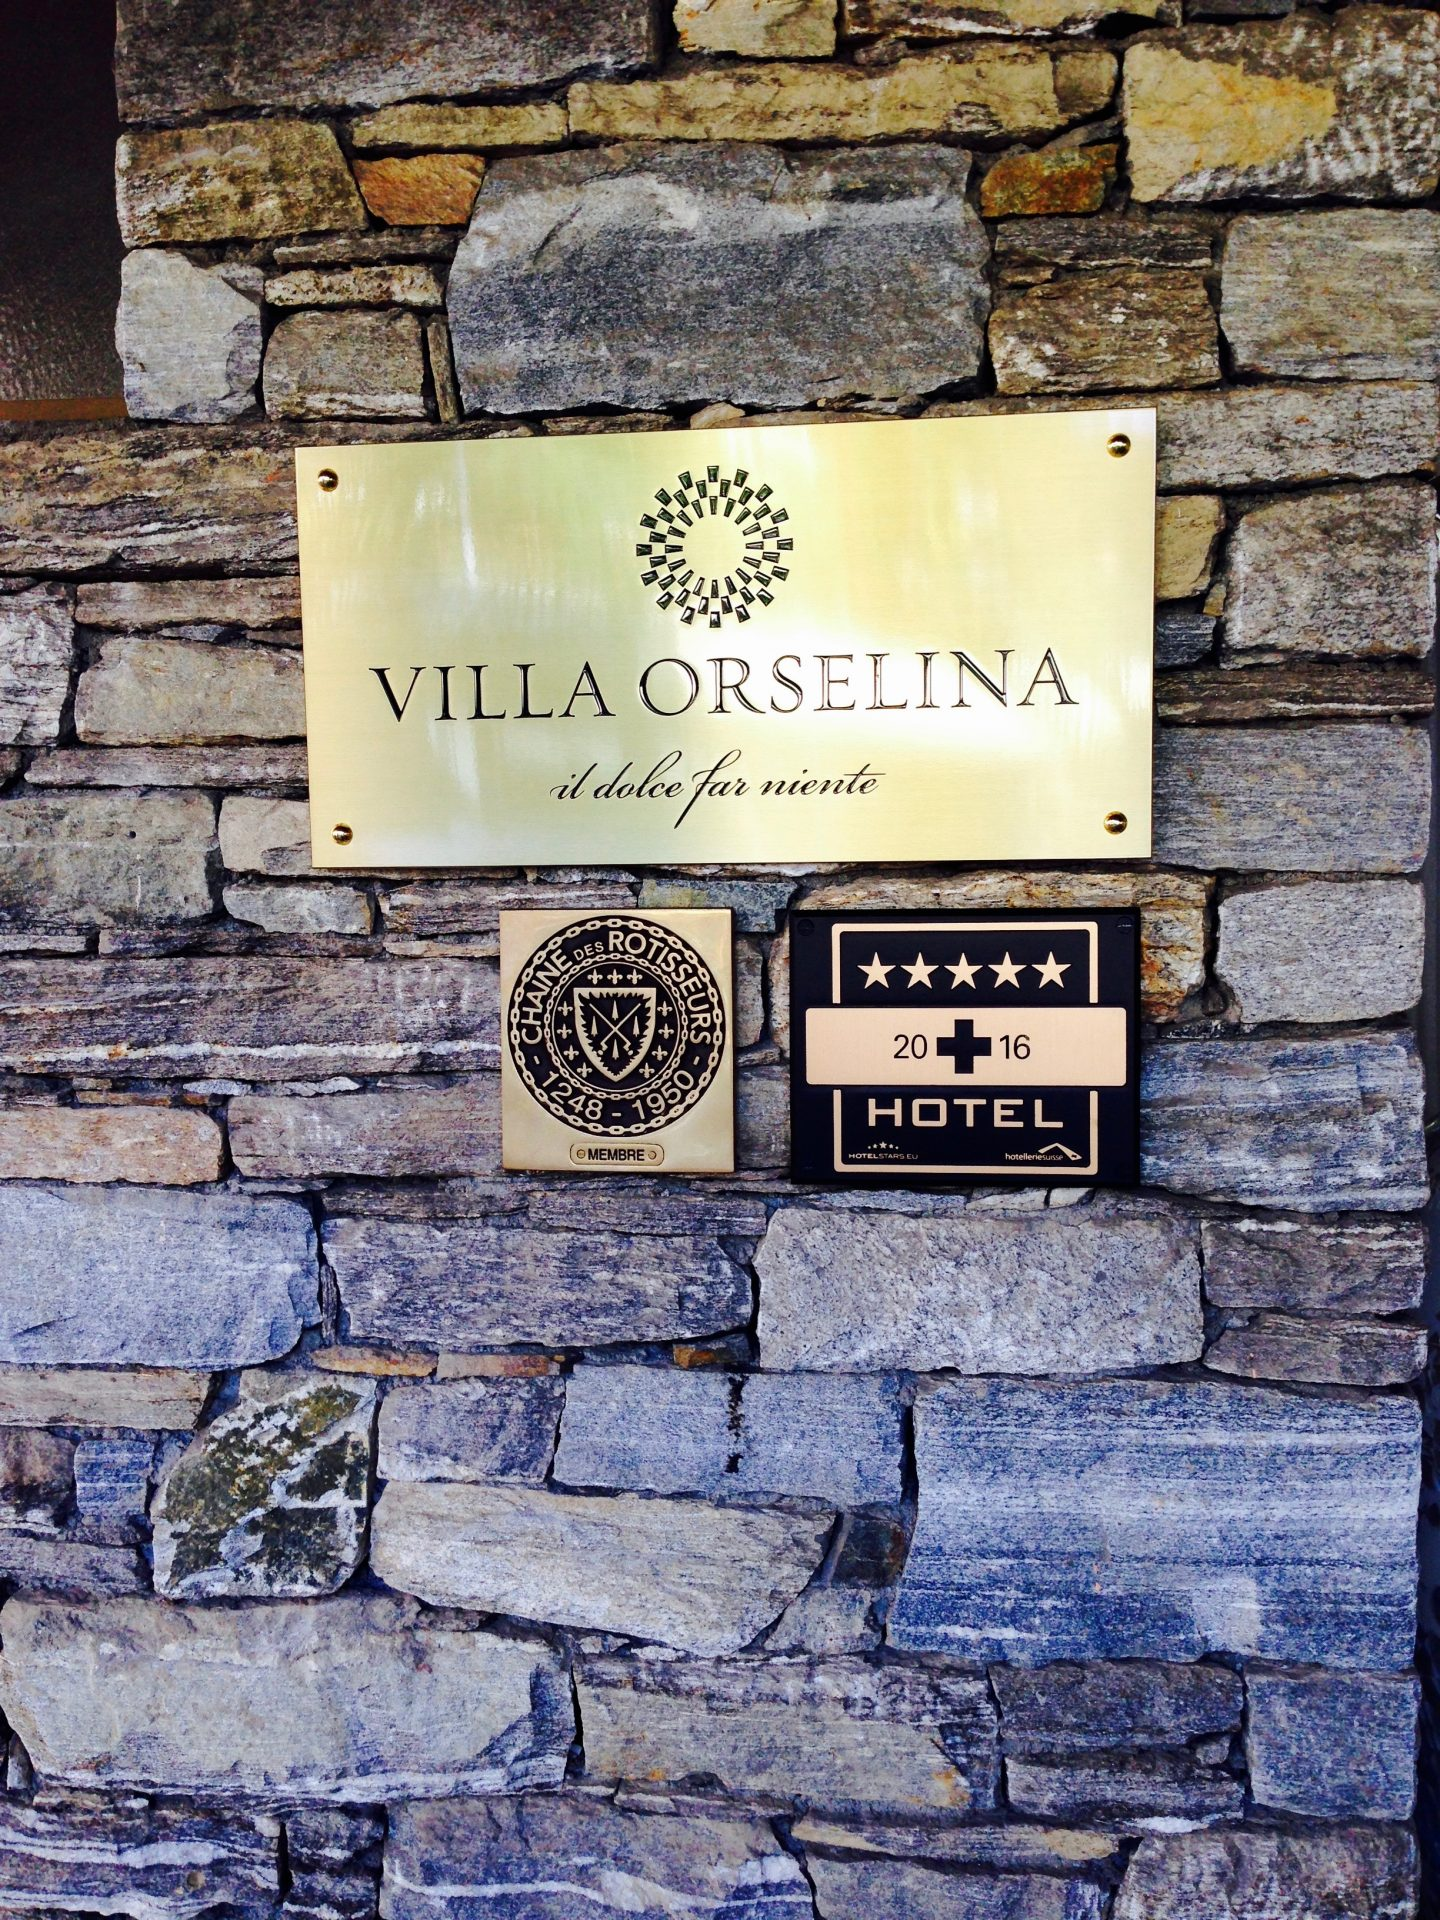 A small luxury hotel in Orselina